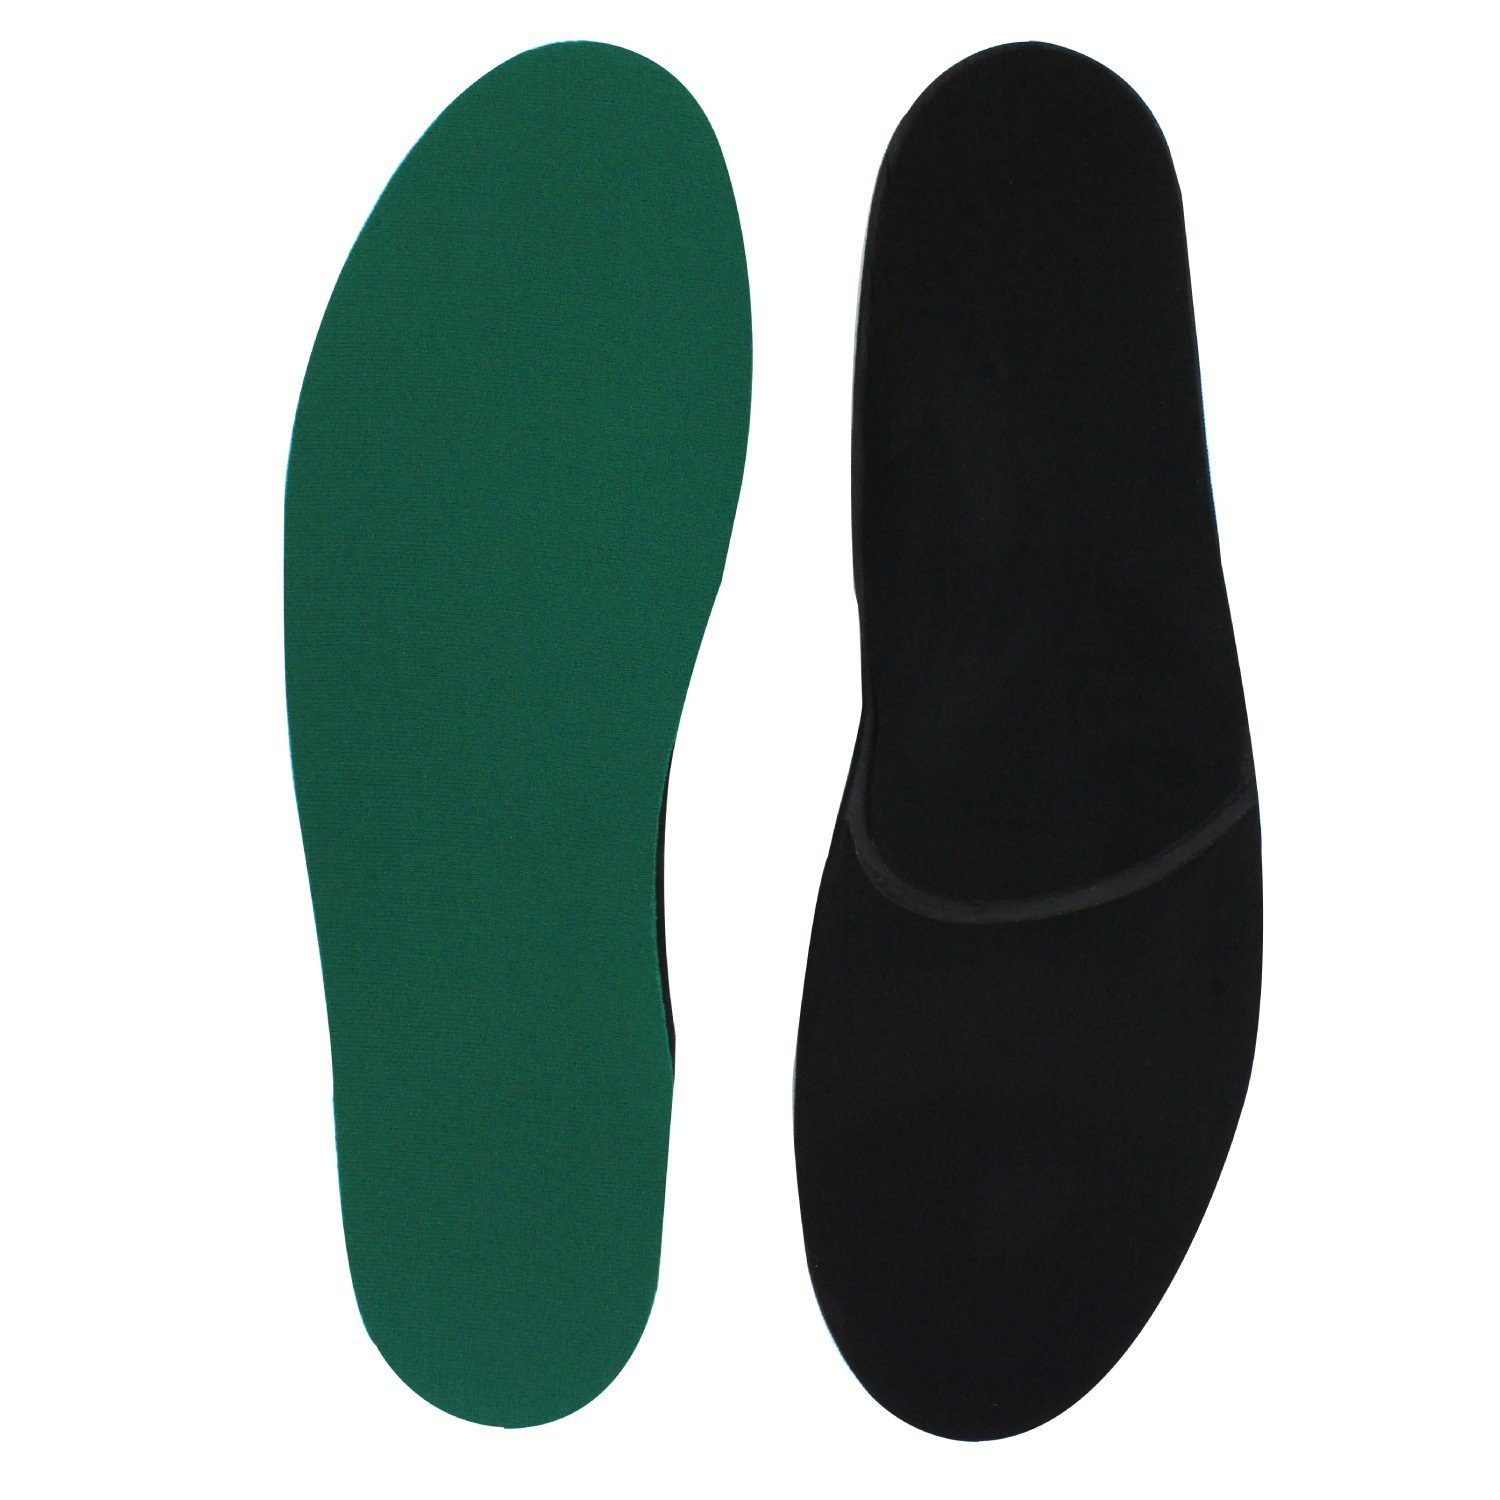 Spenco RX Occupational and Cushioning insole - Plantilla, color negro, talla UK: 7-8 UK